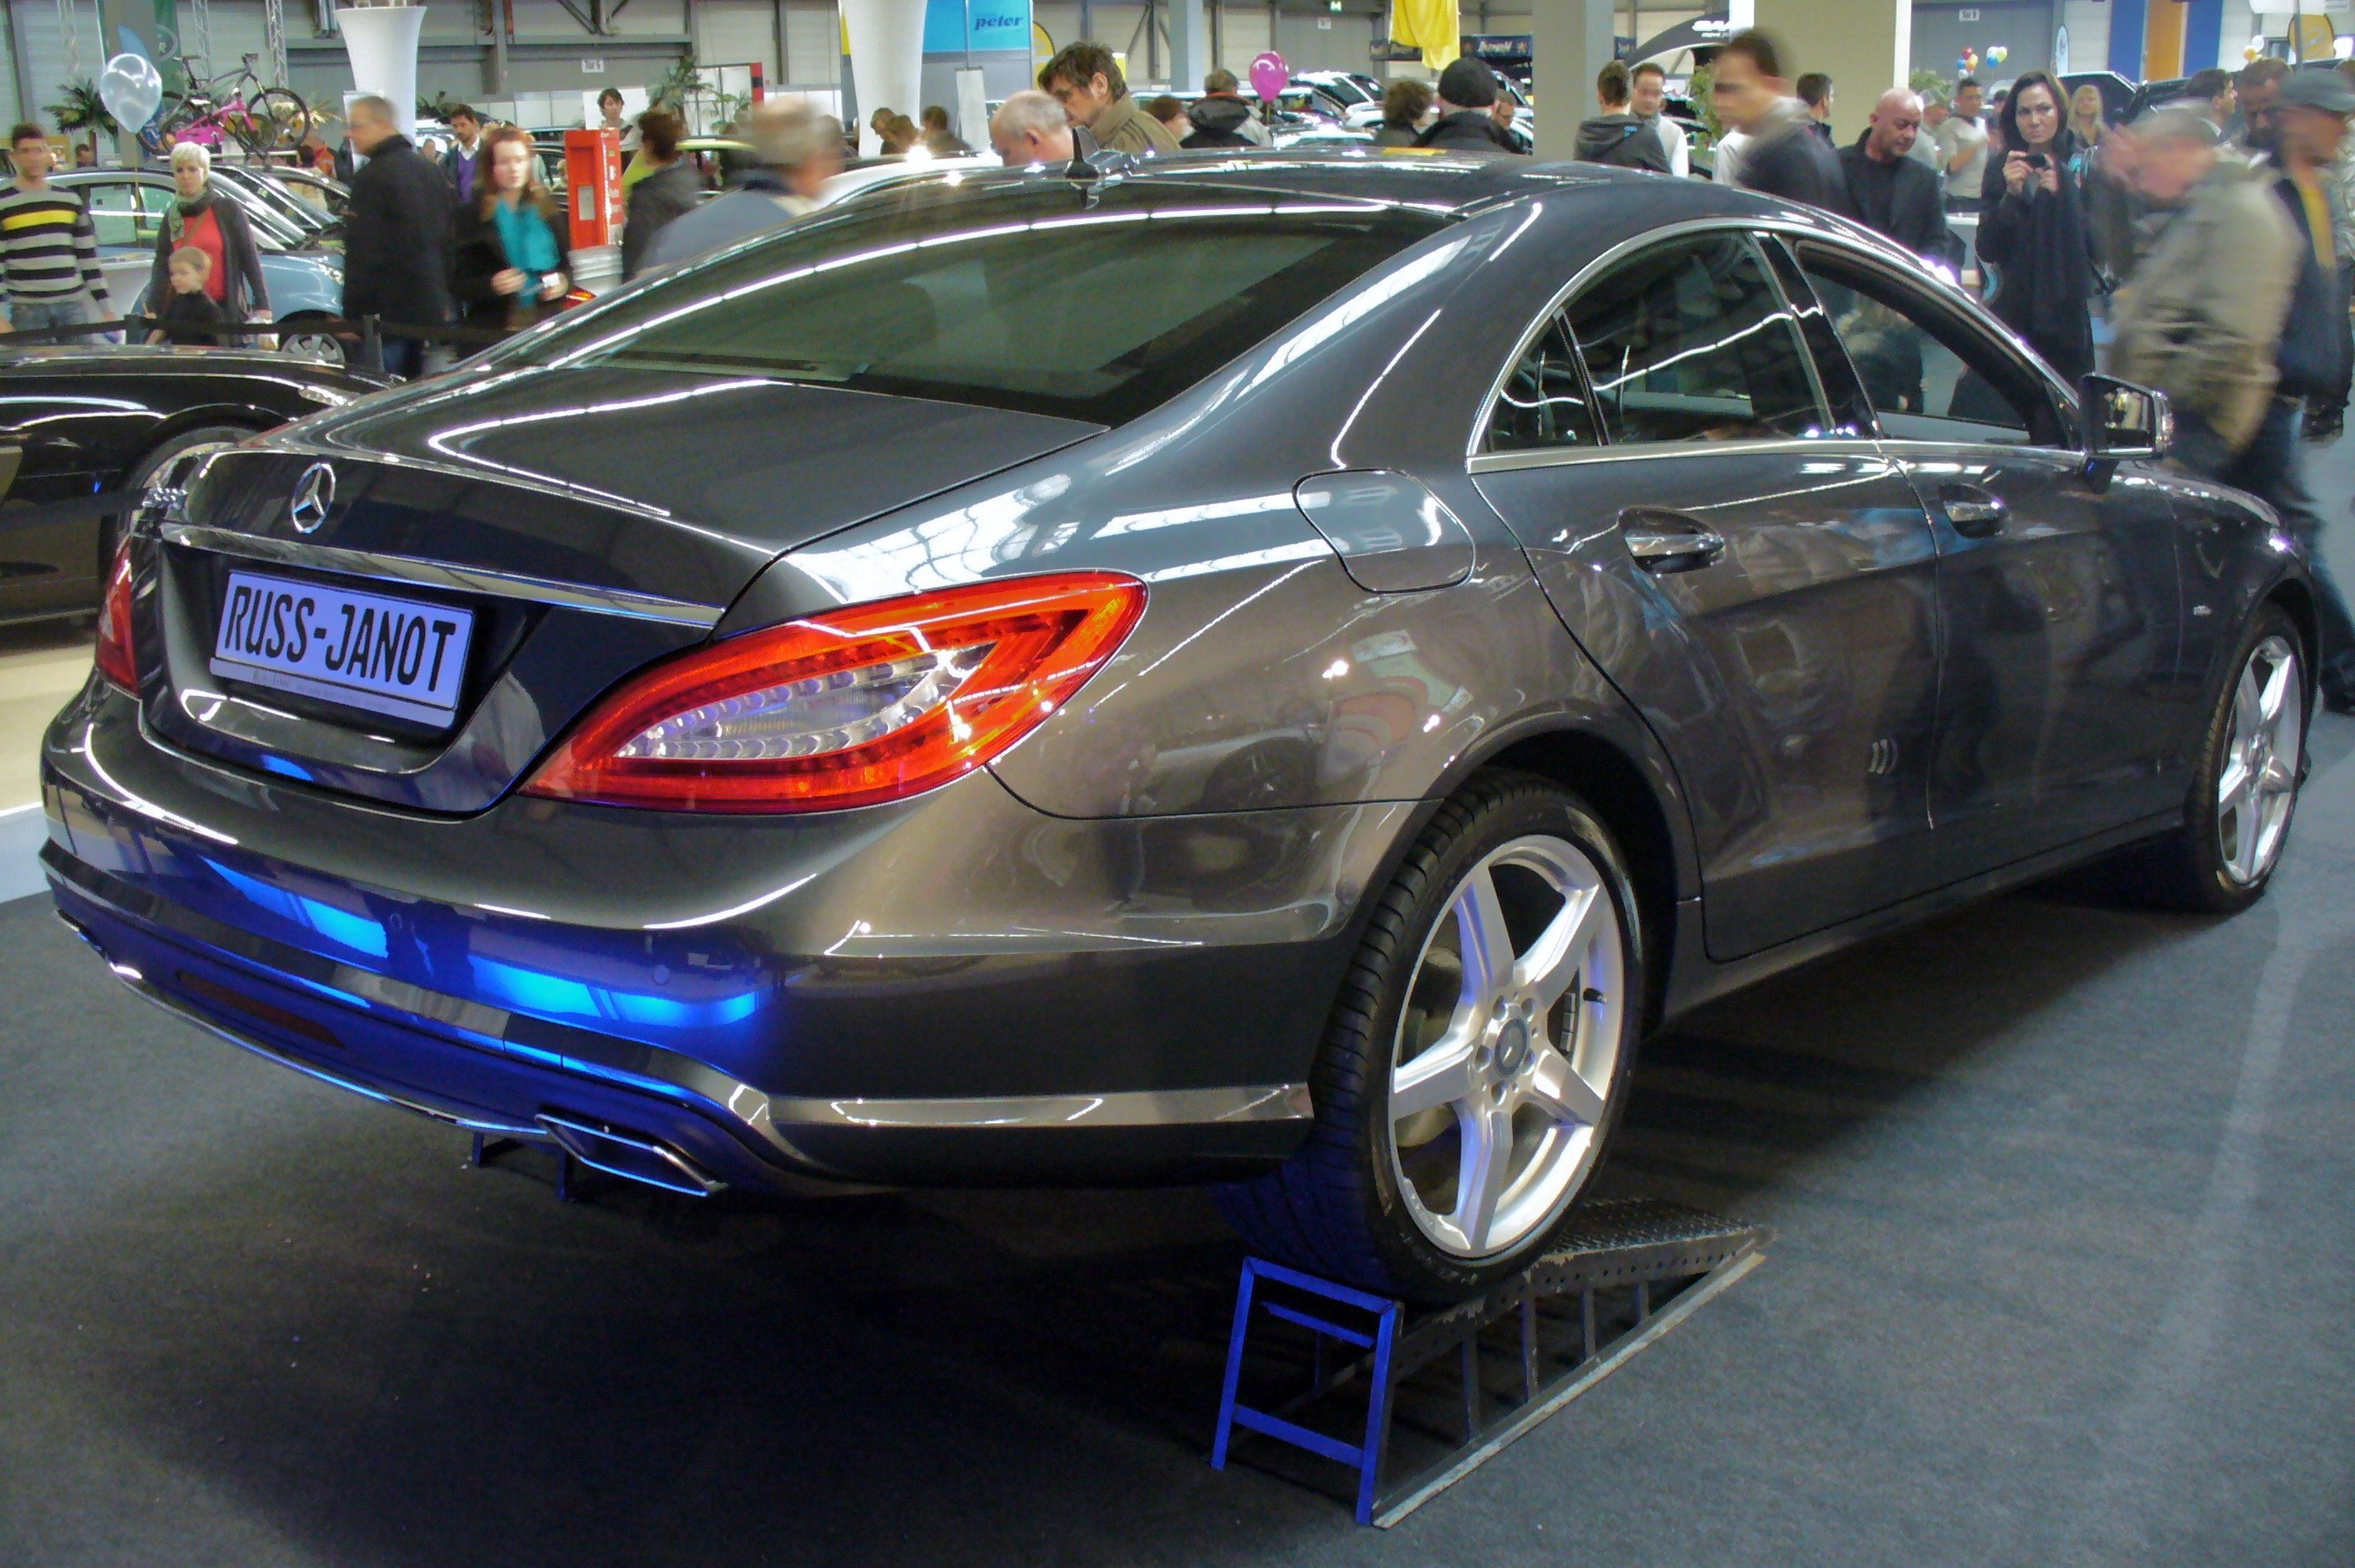 Description Mercedes-Benz C218 CLS 350 Heck.JPG